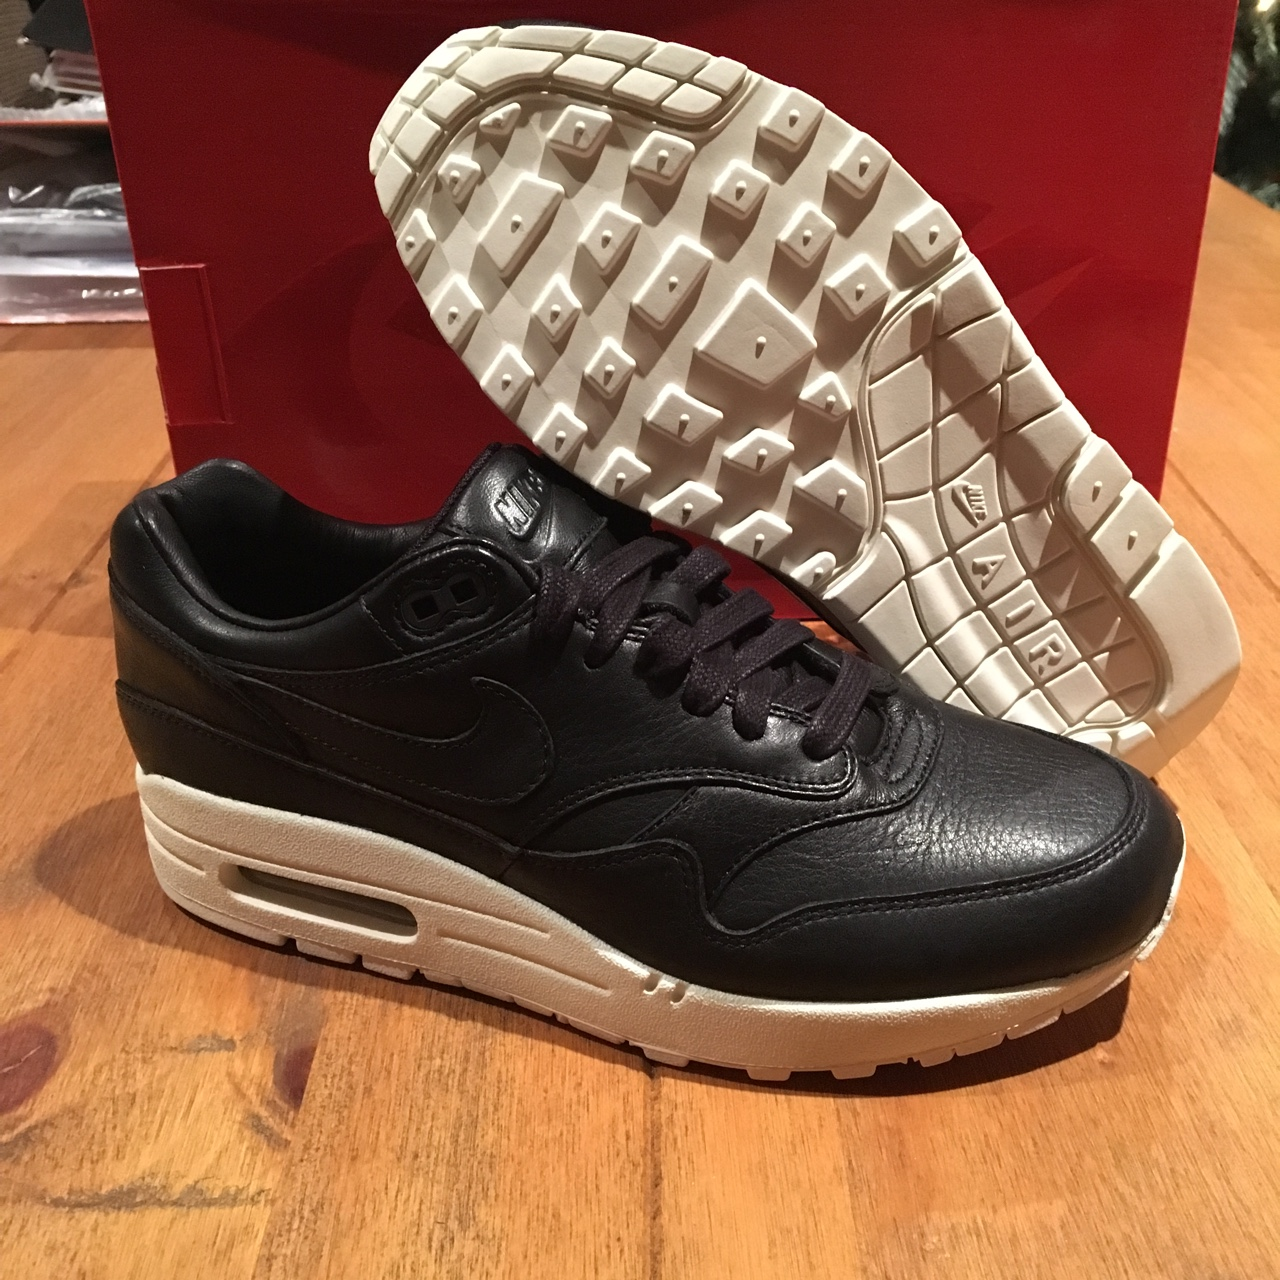 Nike NikeLab Air Max 1 Pinnacle 859554 003 Size Depop